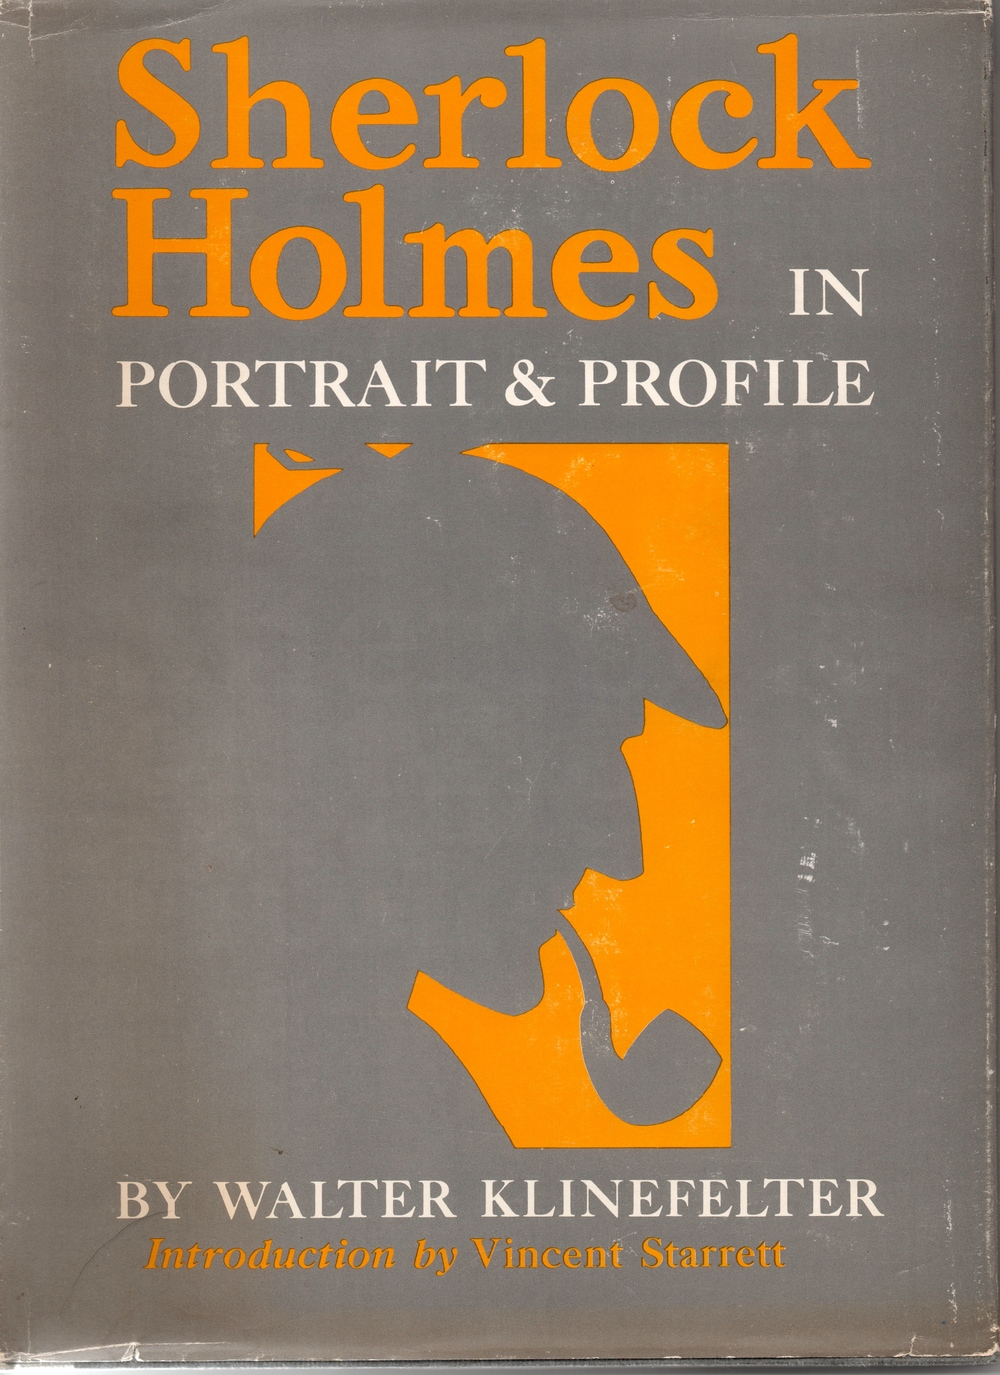 Walter Klinefelter's most popular contribution to Sherlockian literature was his Sherlock Holmes in Portrait and Profile, first published in 1963.